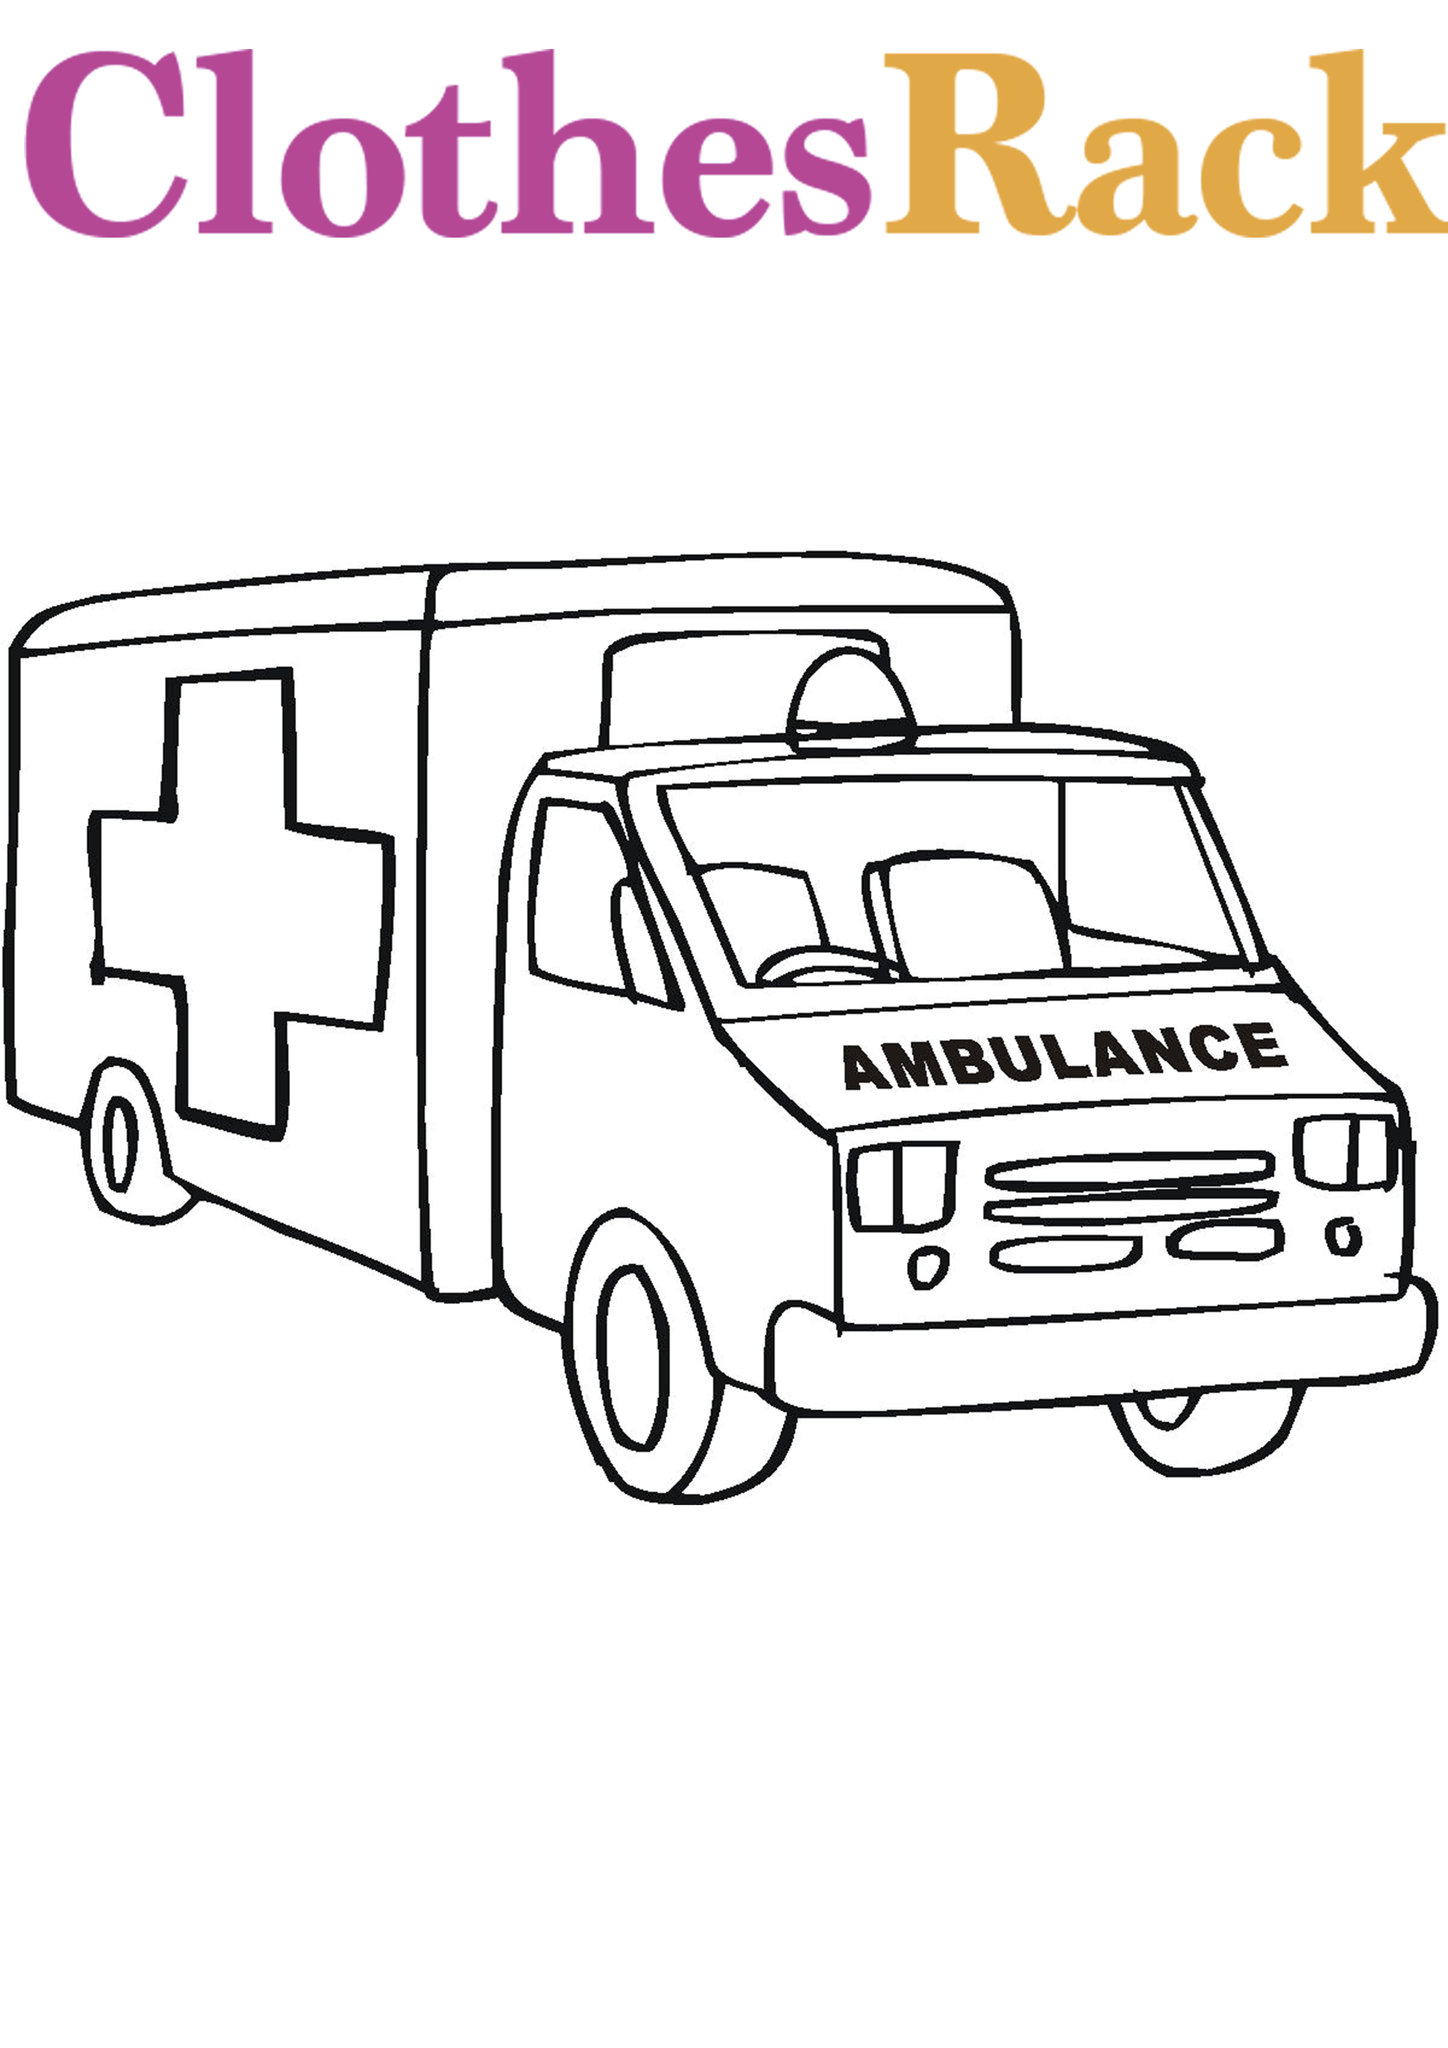 Ambulance Colouring Page | Ambulance Colouring Pictures | Ambulance Pictures To Colour